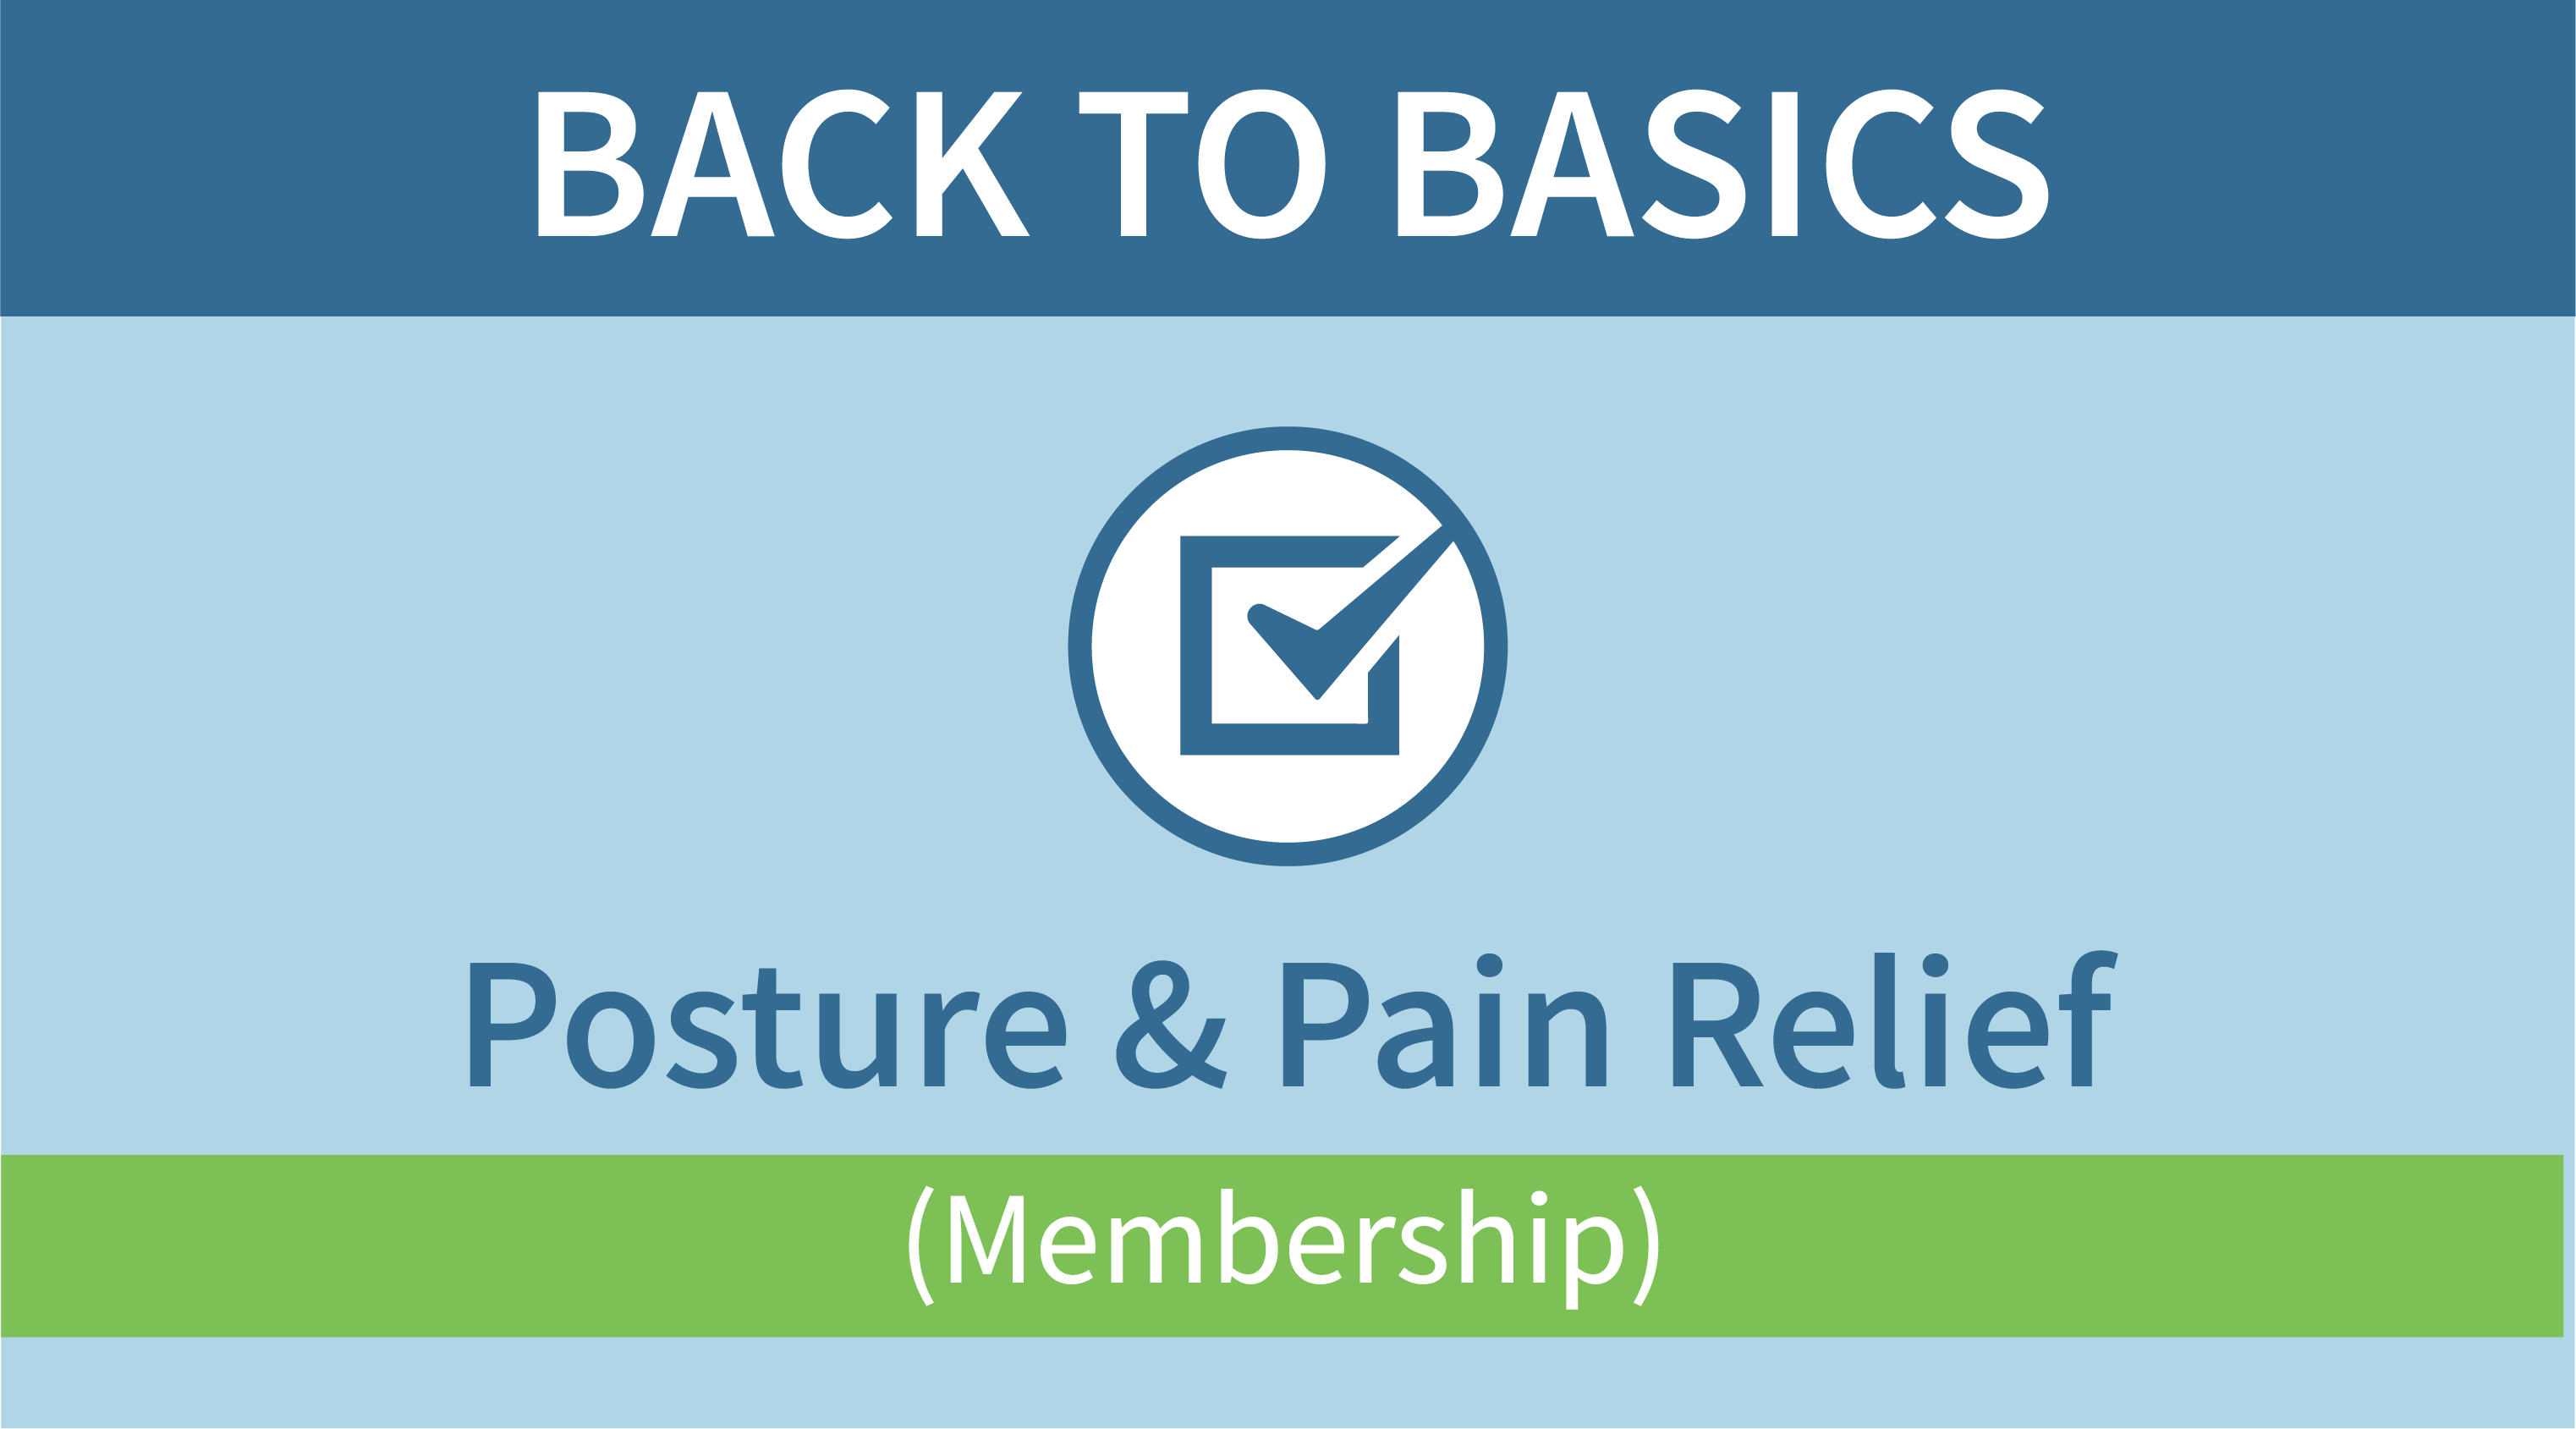 Back to Basics Membership